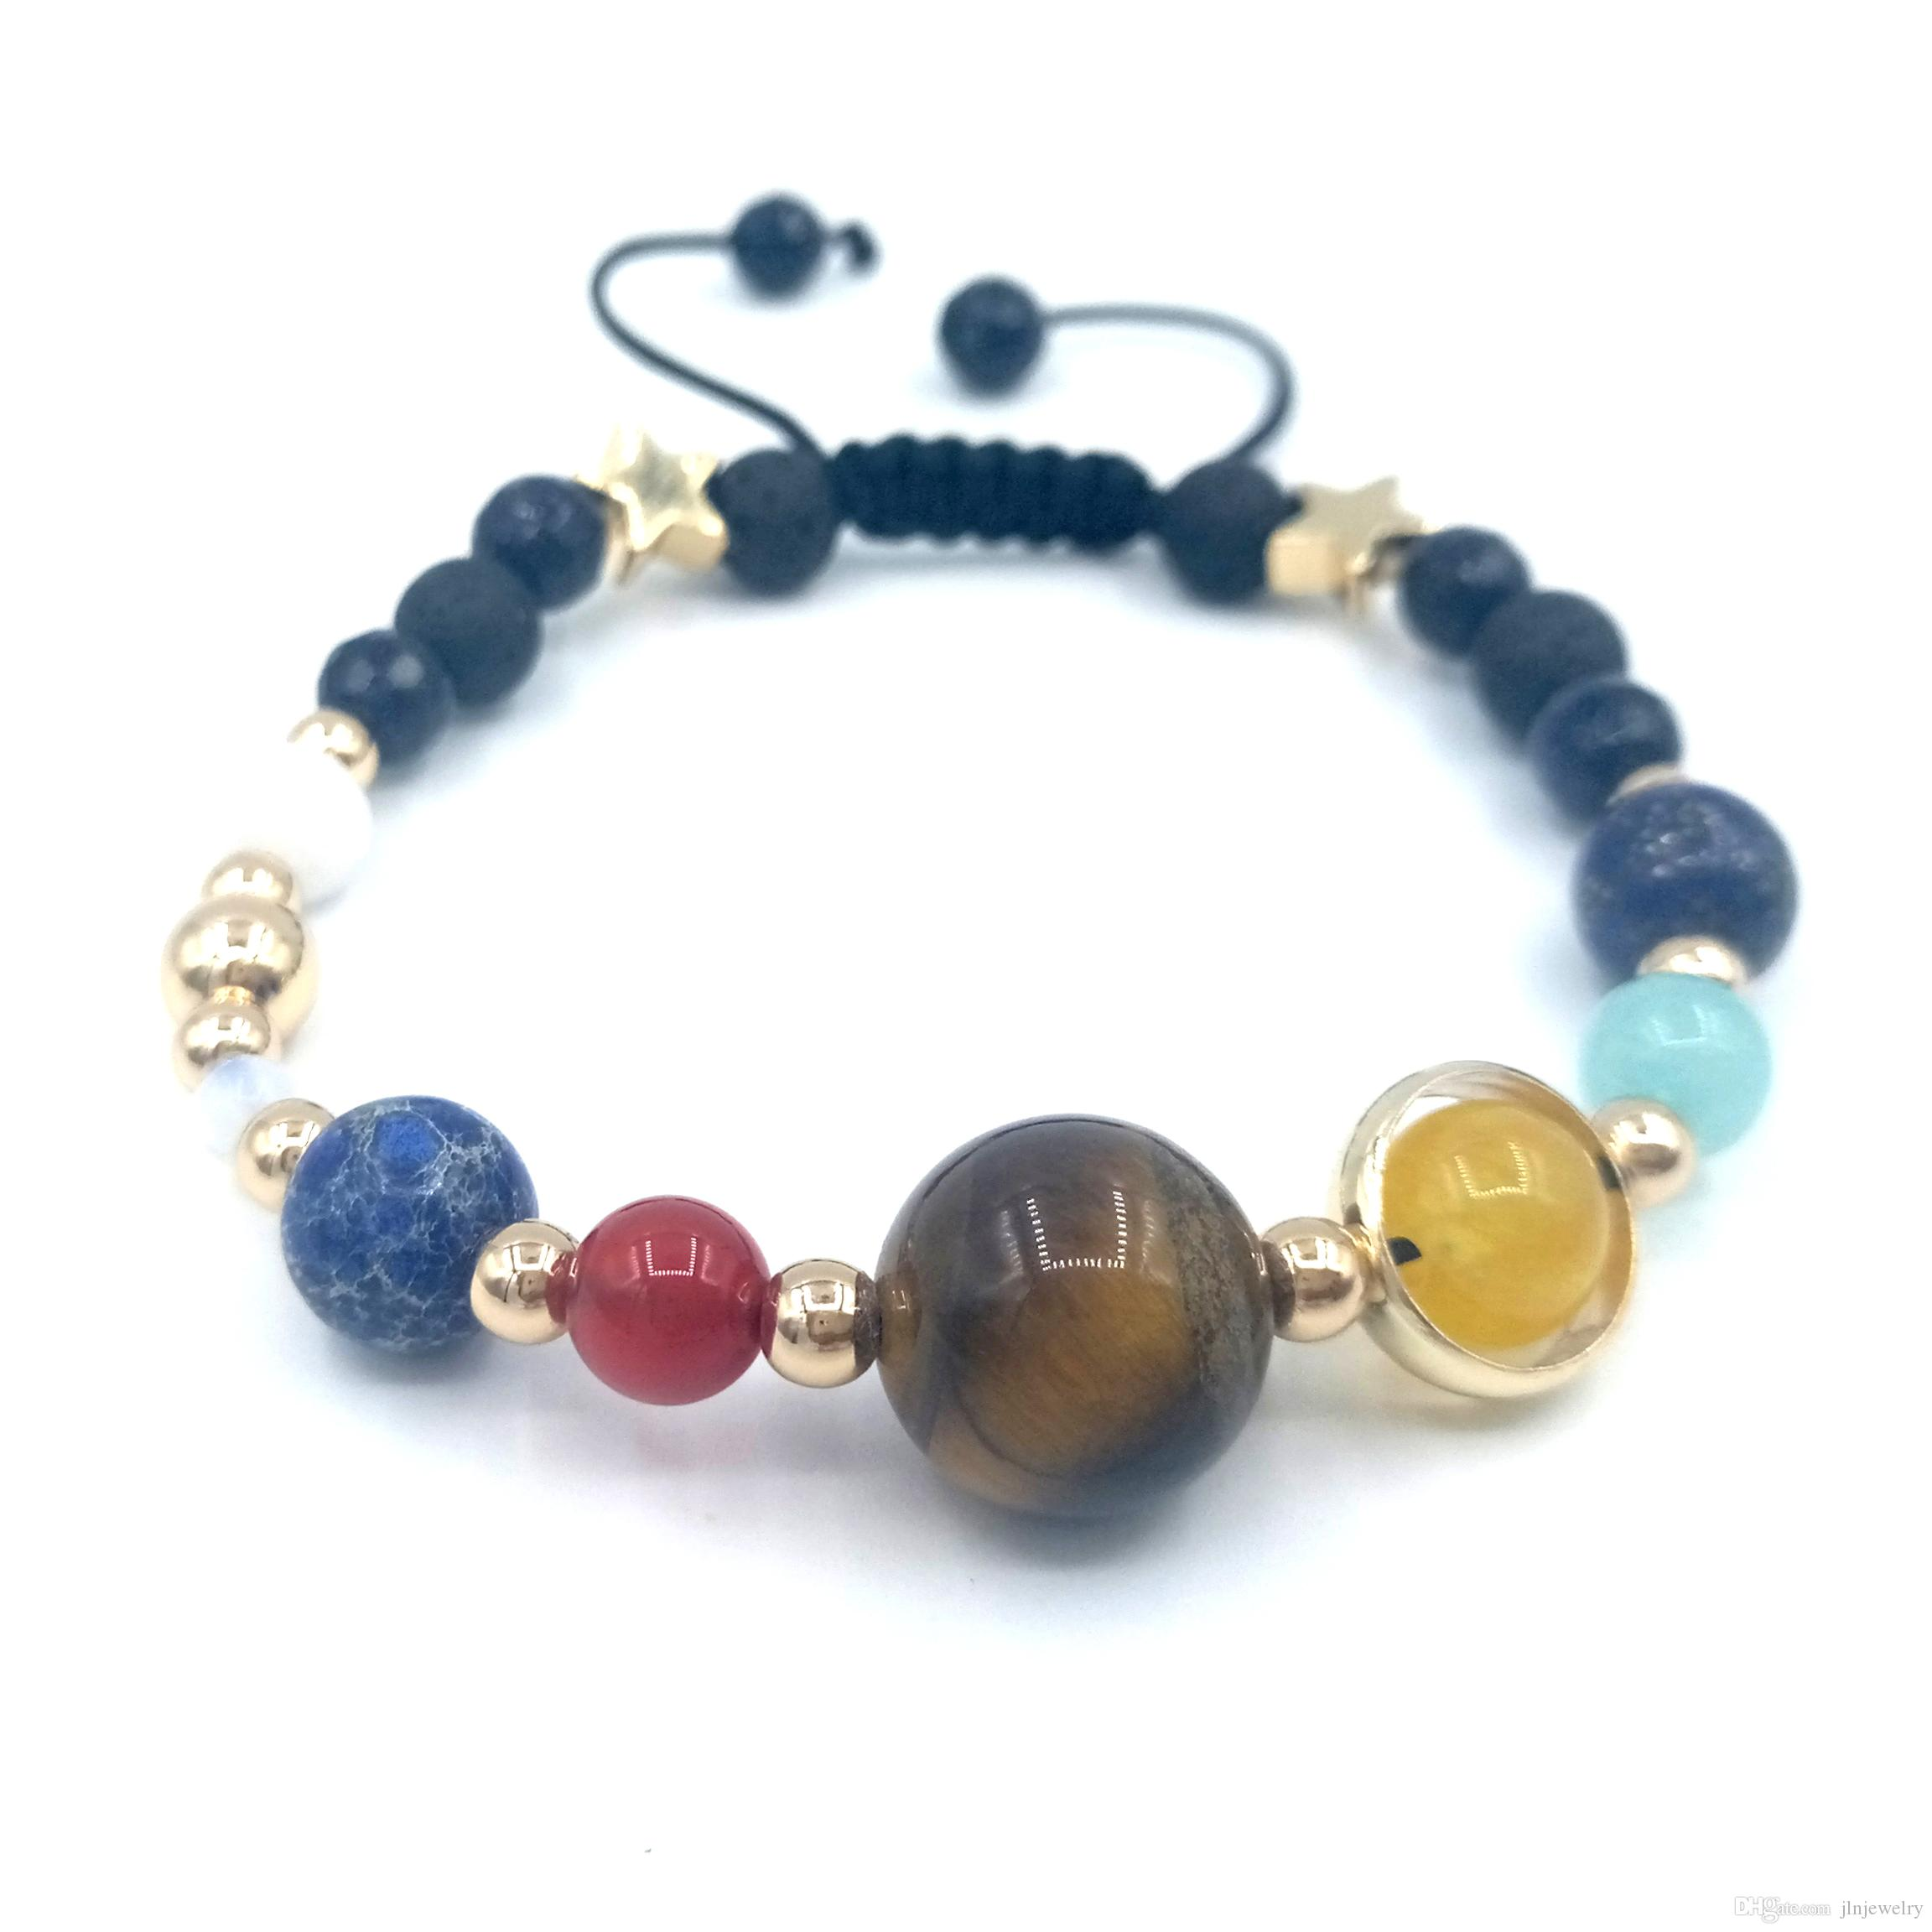 Helpful Hot Sale The Eight Planets Solar System Beads Bracelet Energy Star Natural Stone Chain Anklet For Women Gift Anklets